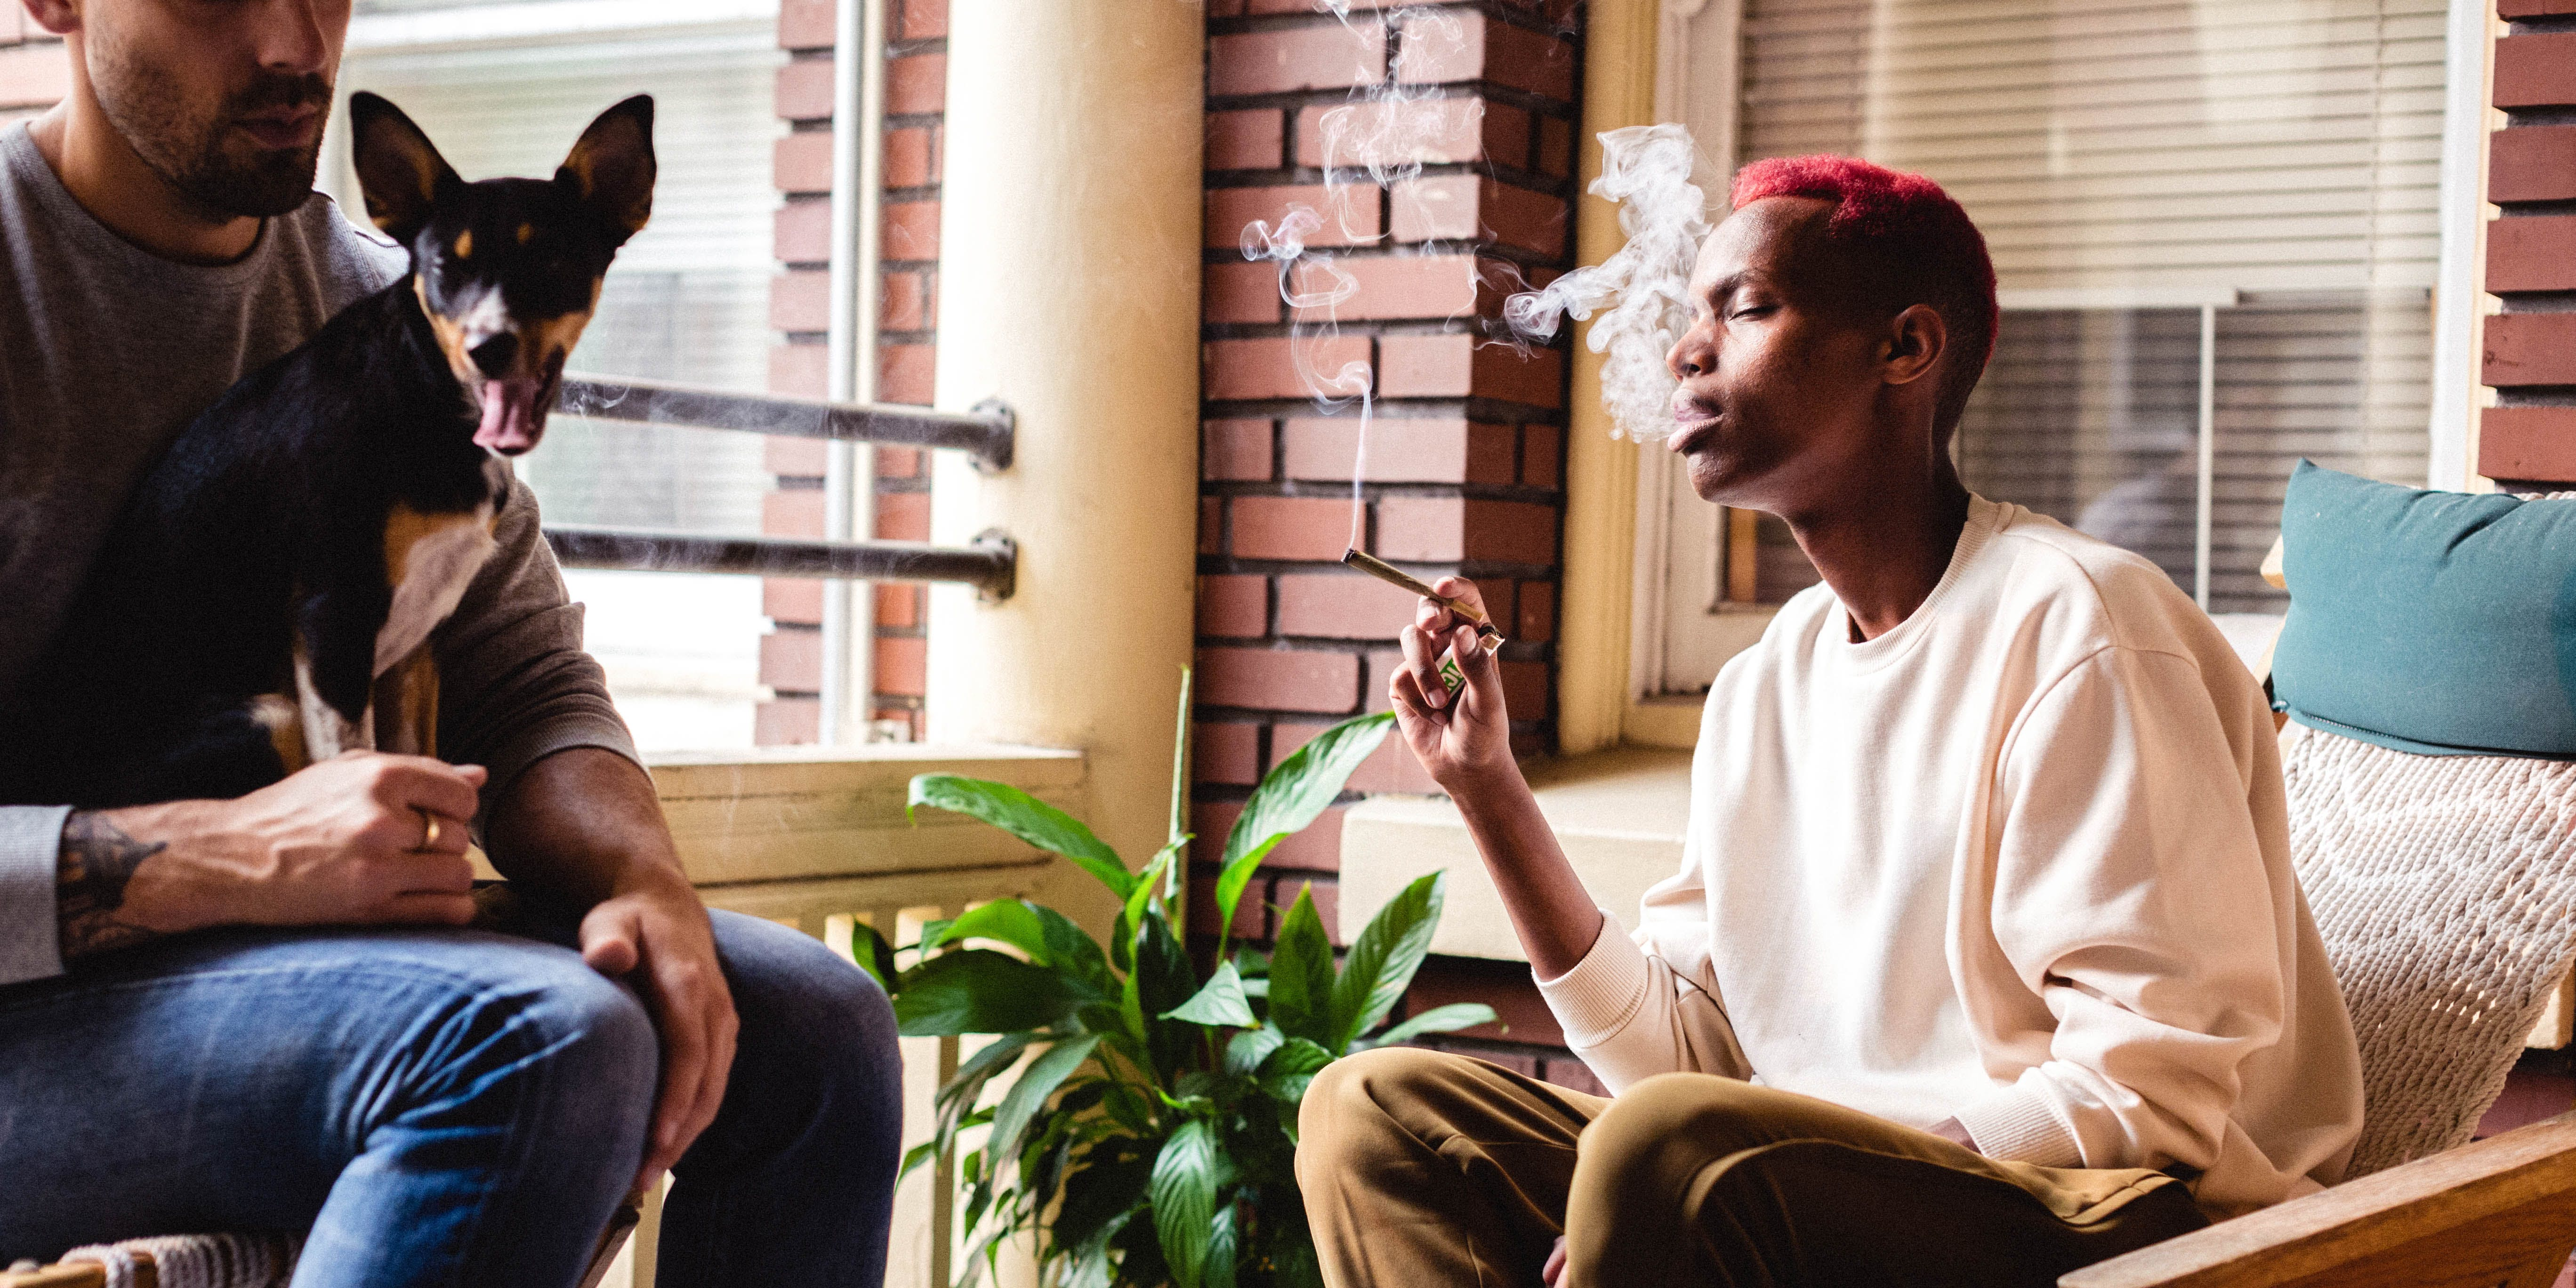 In this article we explore the health benefits of marijuana. Here, a man smokes a joint on the couch with his friend